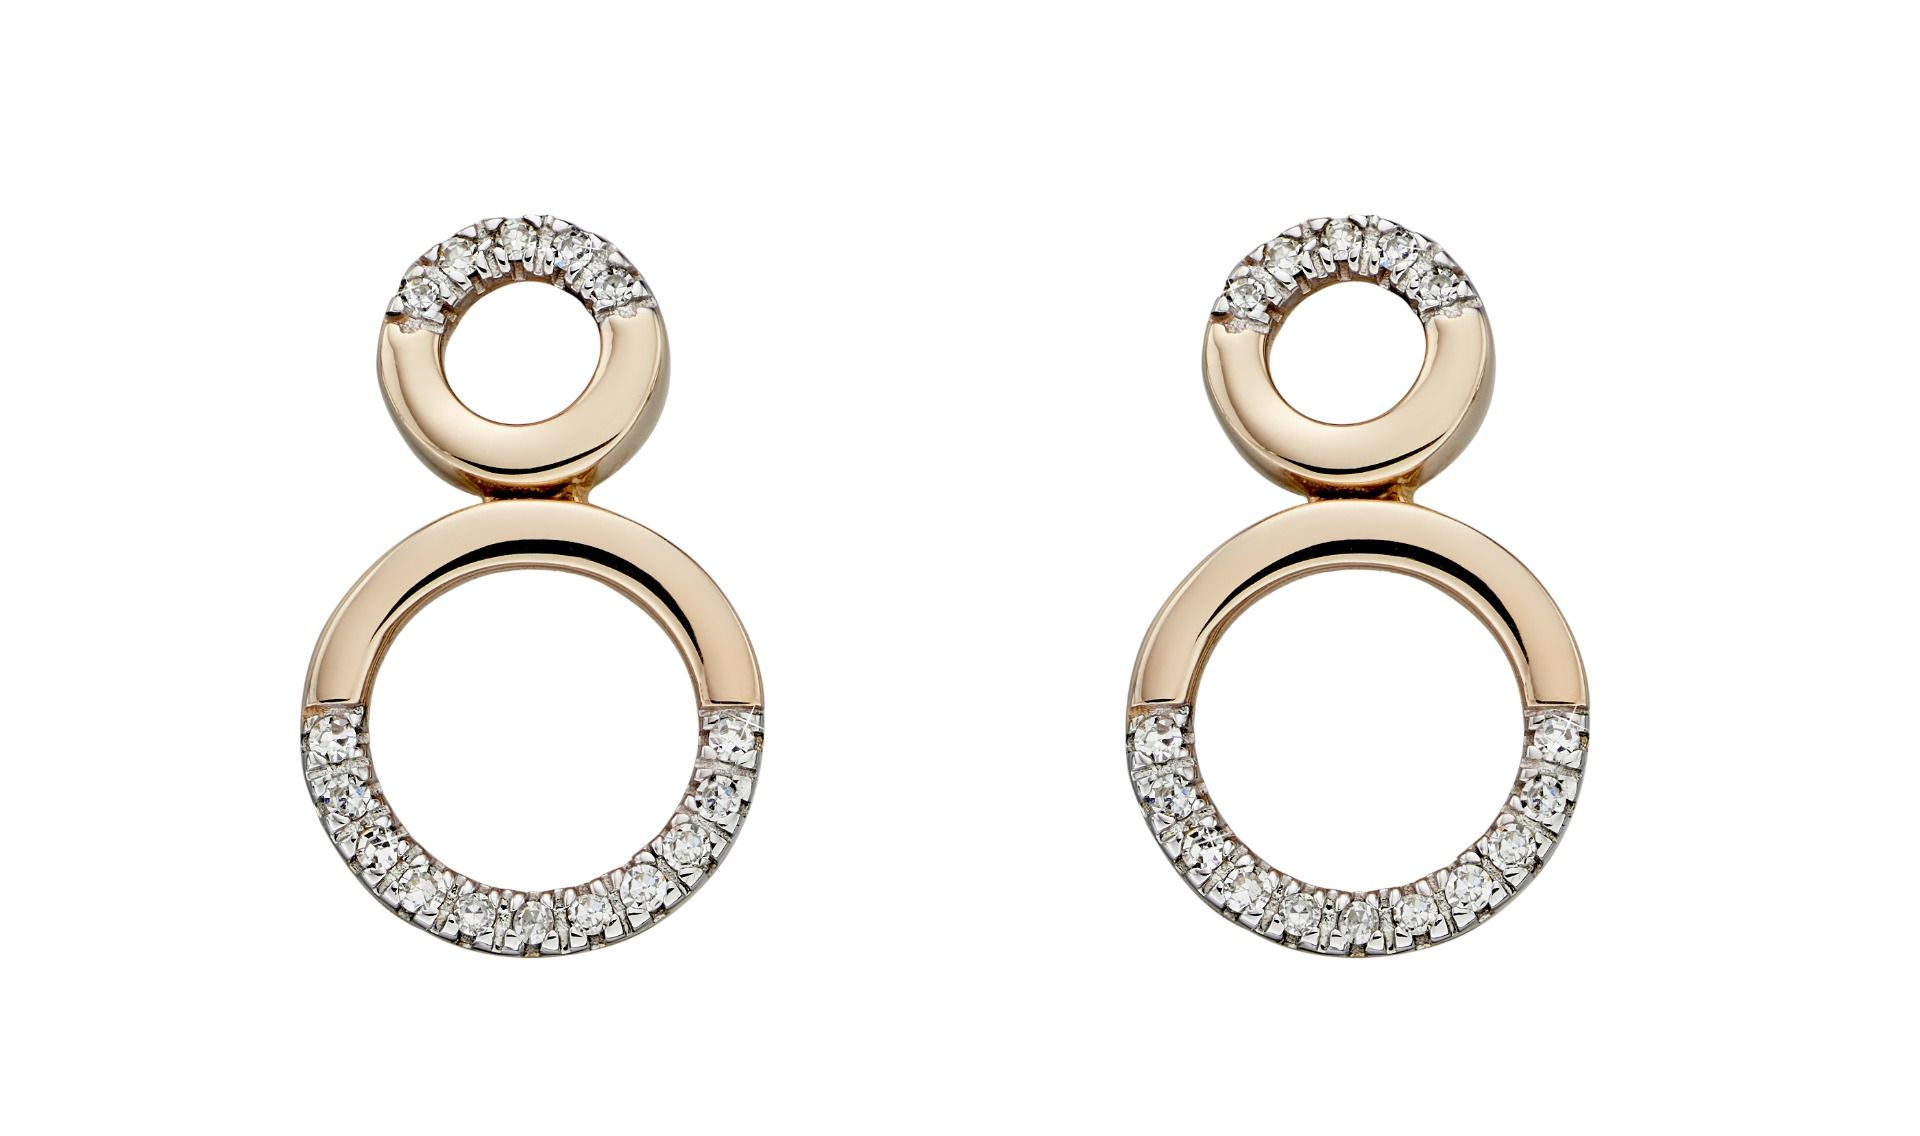 69501 - Open double circle stud earring in 9ct yellow gold